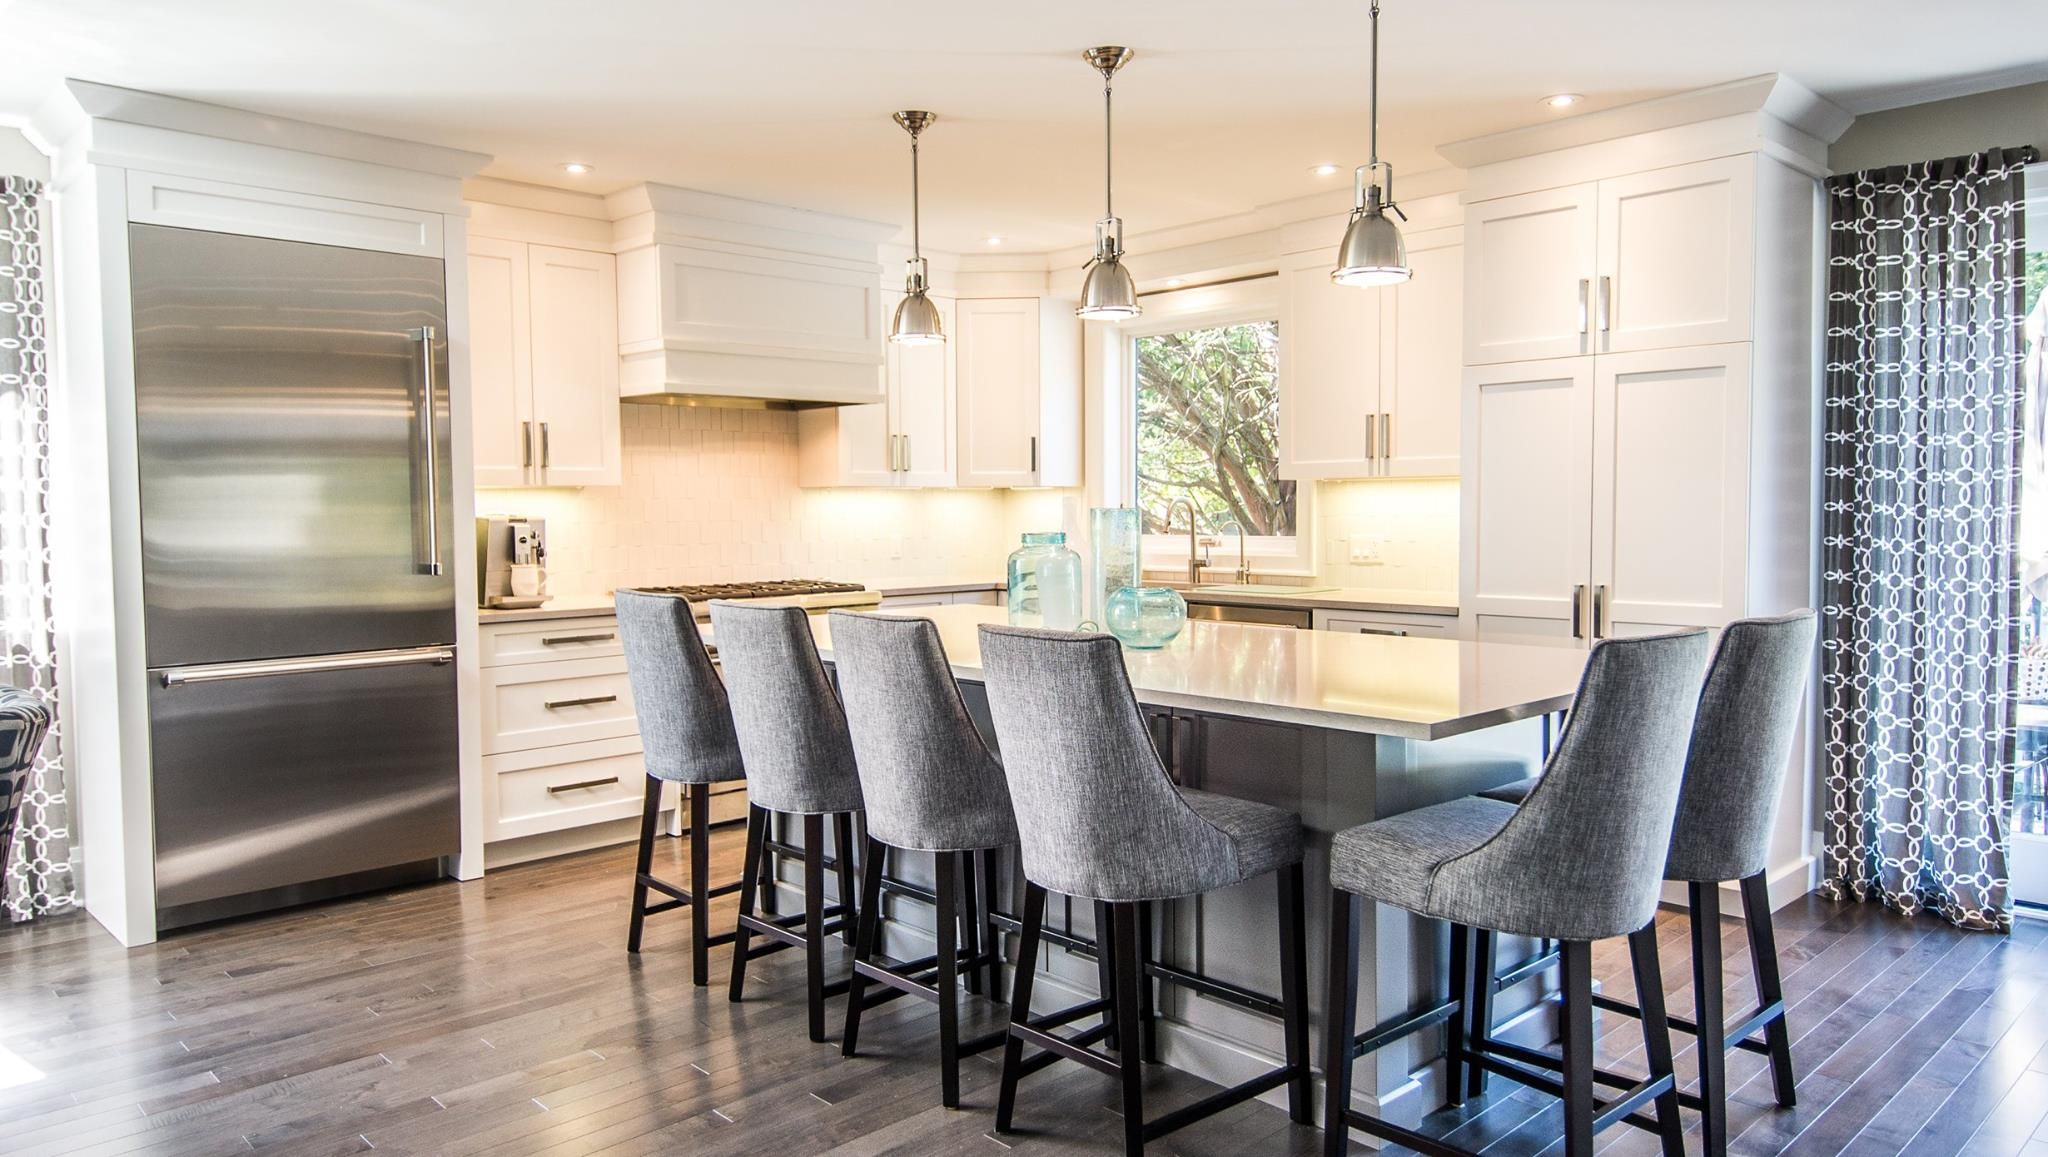 Blackstone Cabinetry pairs soft grey upholstery and curtains with understated Clamshell countertops in this clean and contemporary kitchen design that's a modern take on the classic black and white color combo.